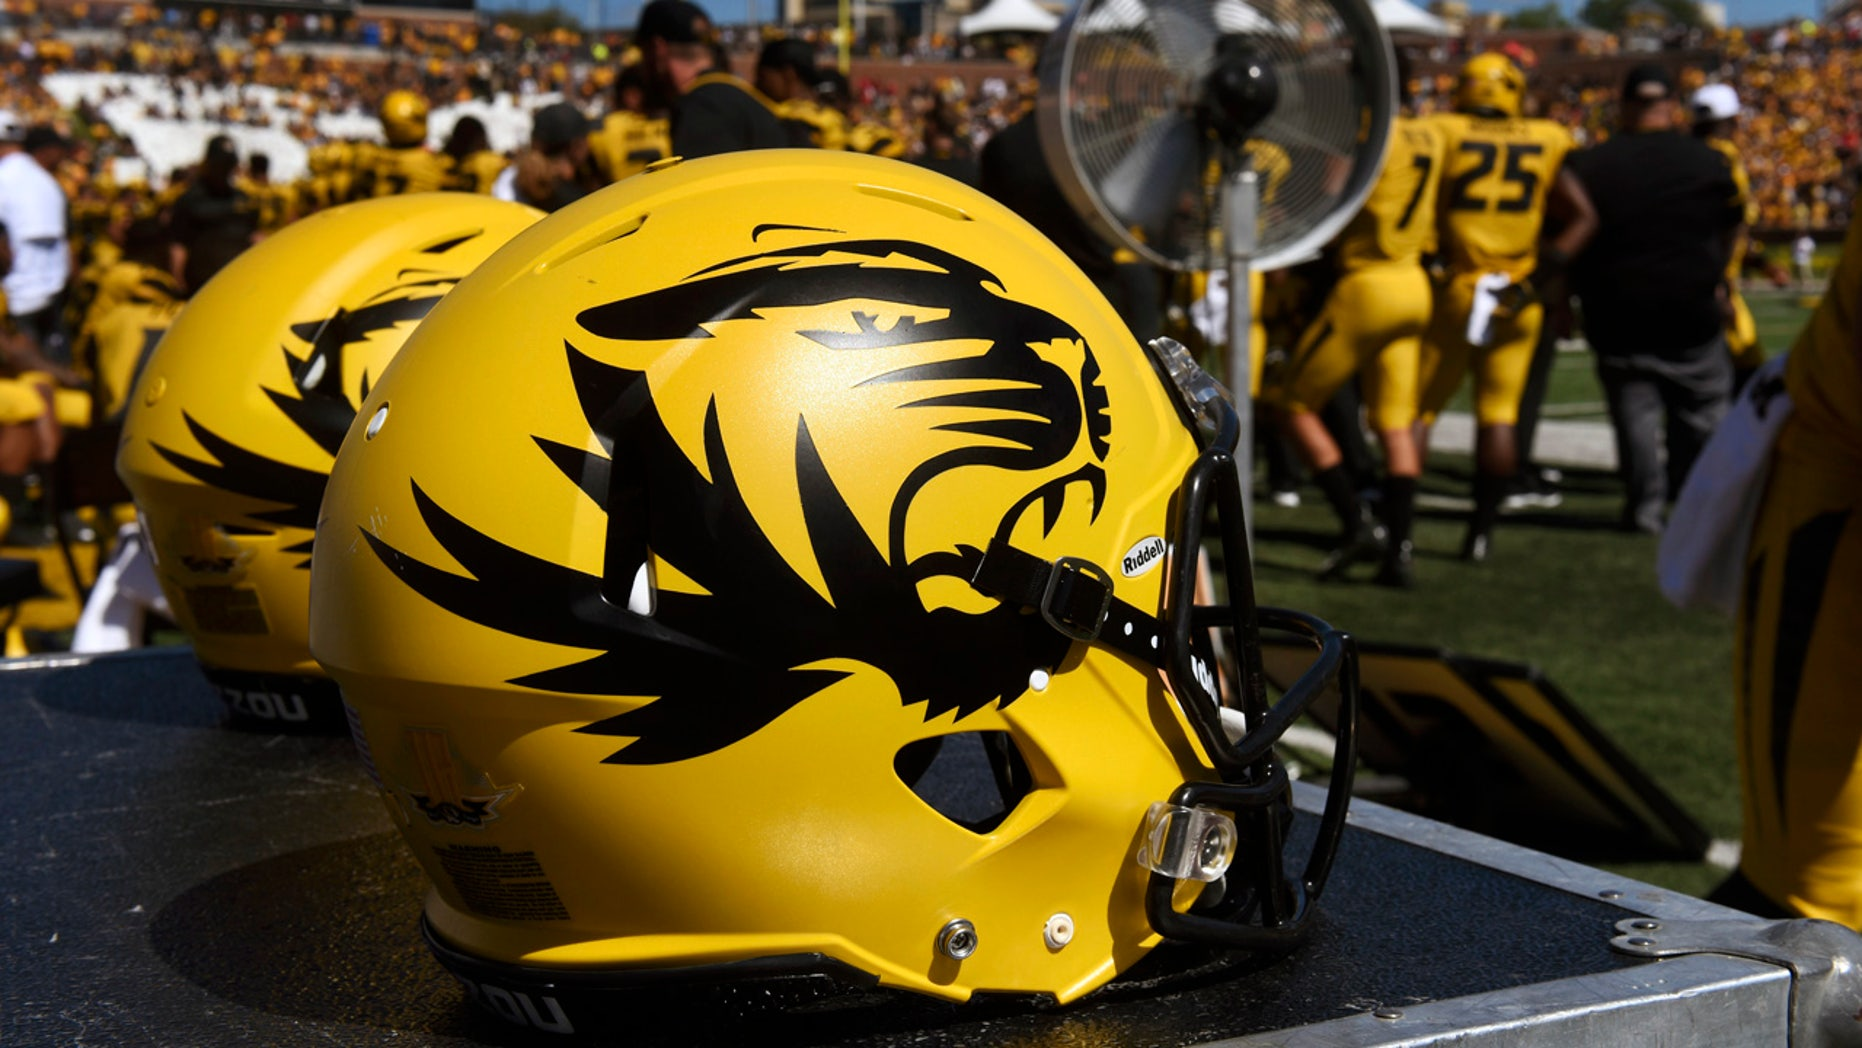 Missouri sanctioned by NCAA after academic misconduct